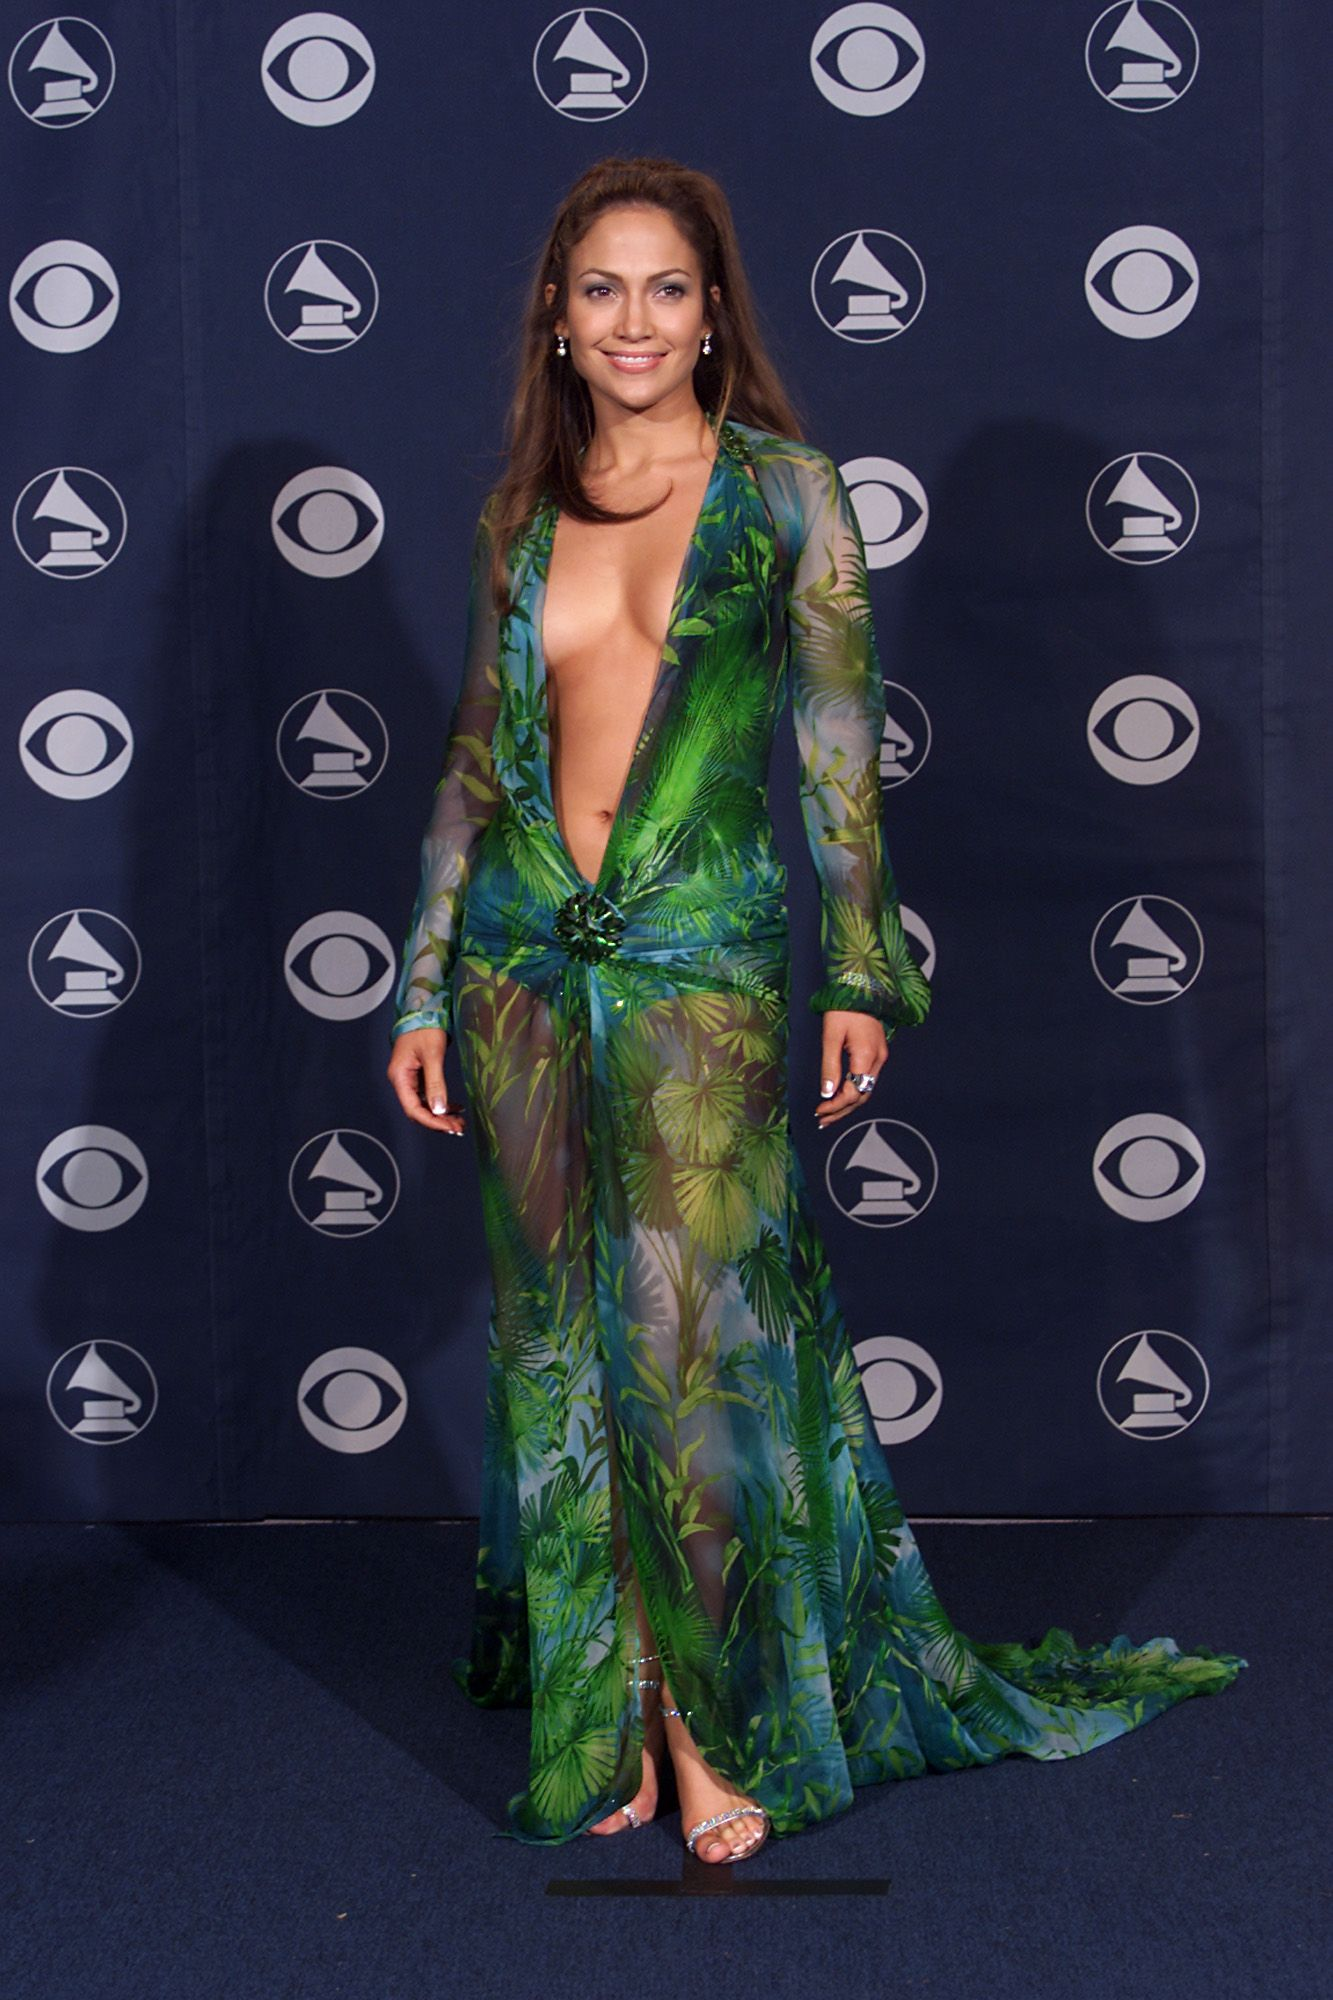 42nd Annual Grammy Awards - Pressroom